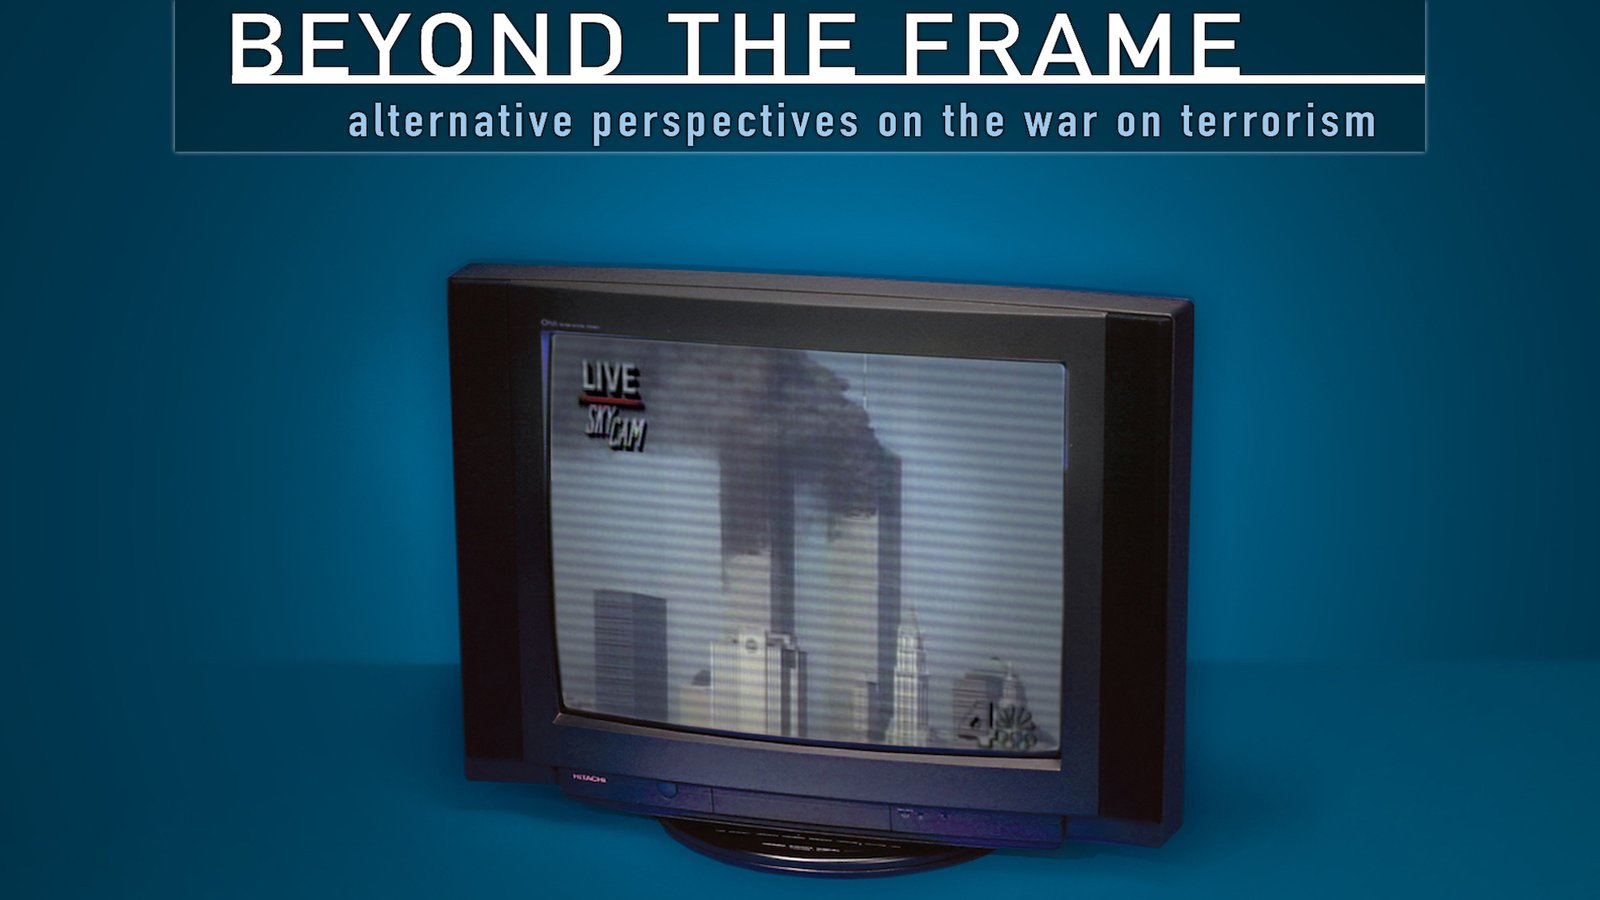 Beyond the Frame - Alternative Perspectives on the War on Terrorism